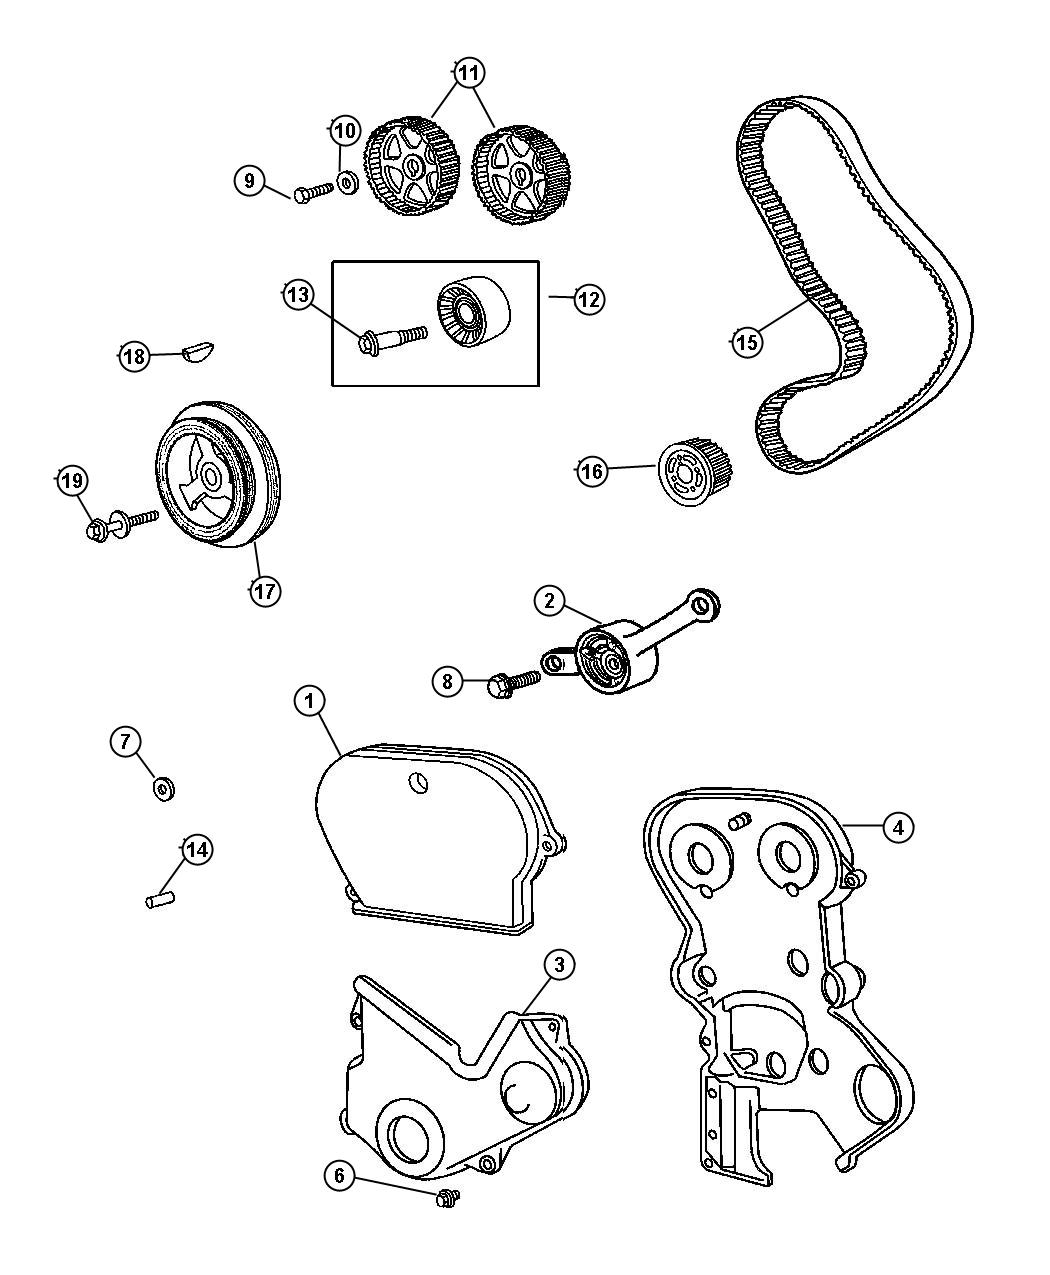 2006 Chrysler Pt Cruiser Timing Cover Gasket Replacement on 2002 oldsmobile intrigue service manual